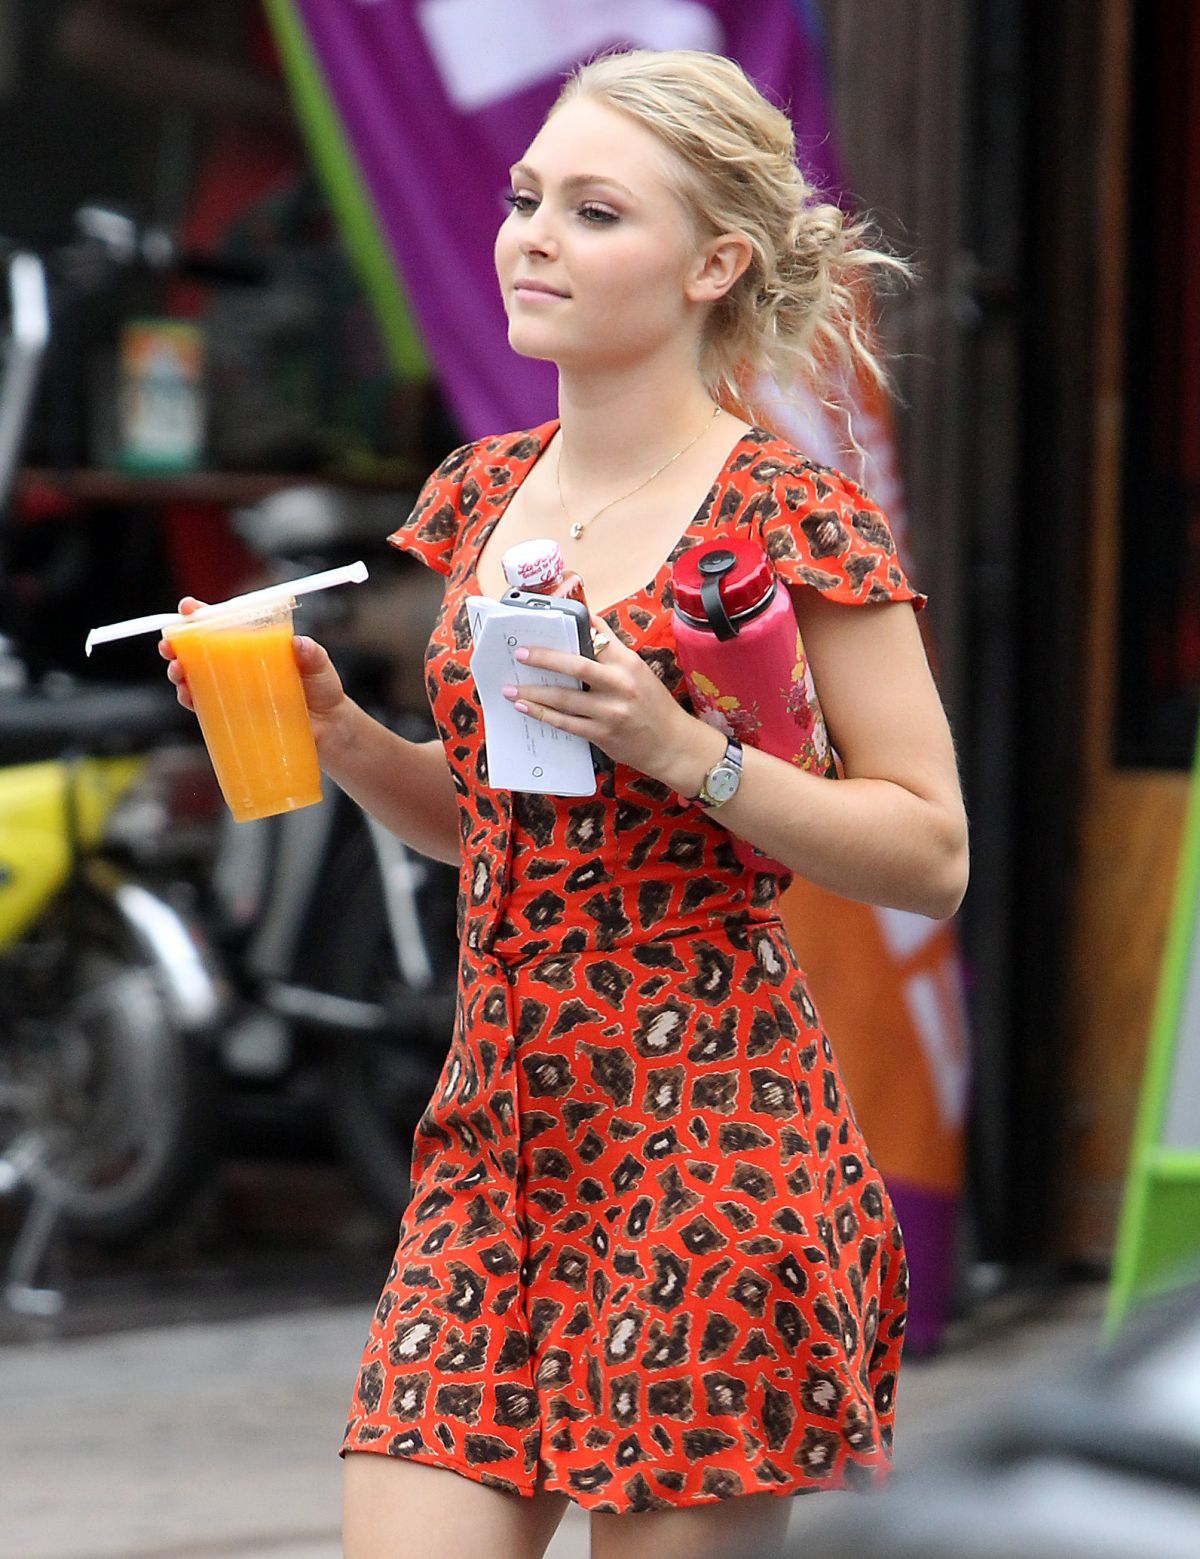 AnnaSophia Robb of The Carrie Diaries Already Cut Her Hair, What Does This Mean ForCarrie pictures